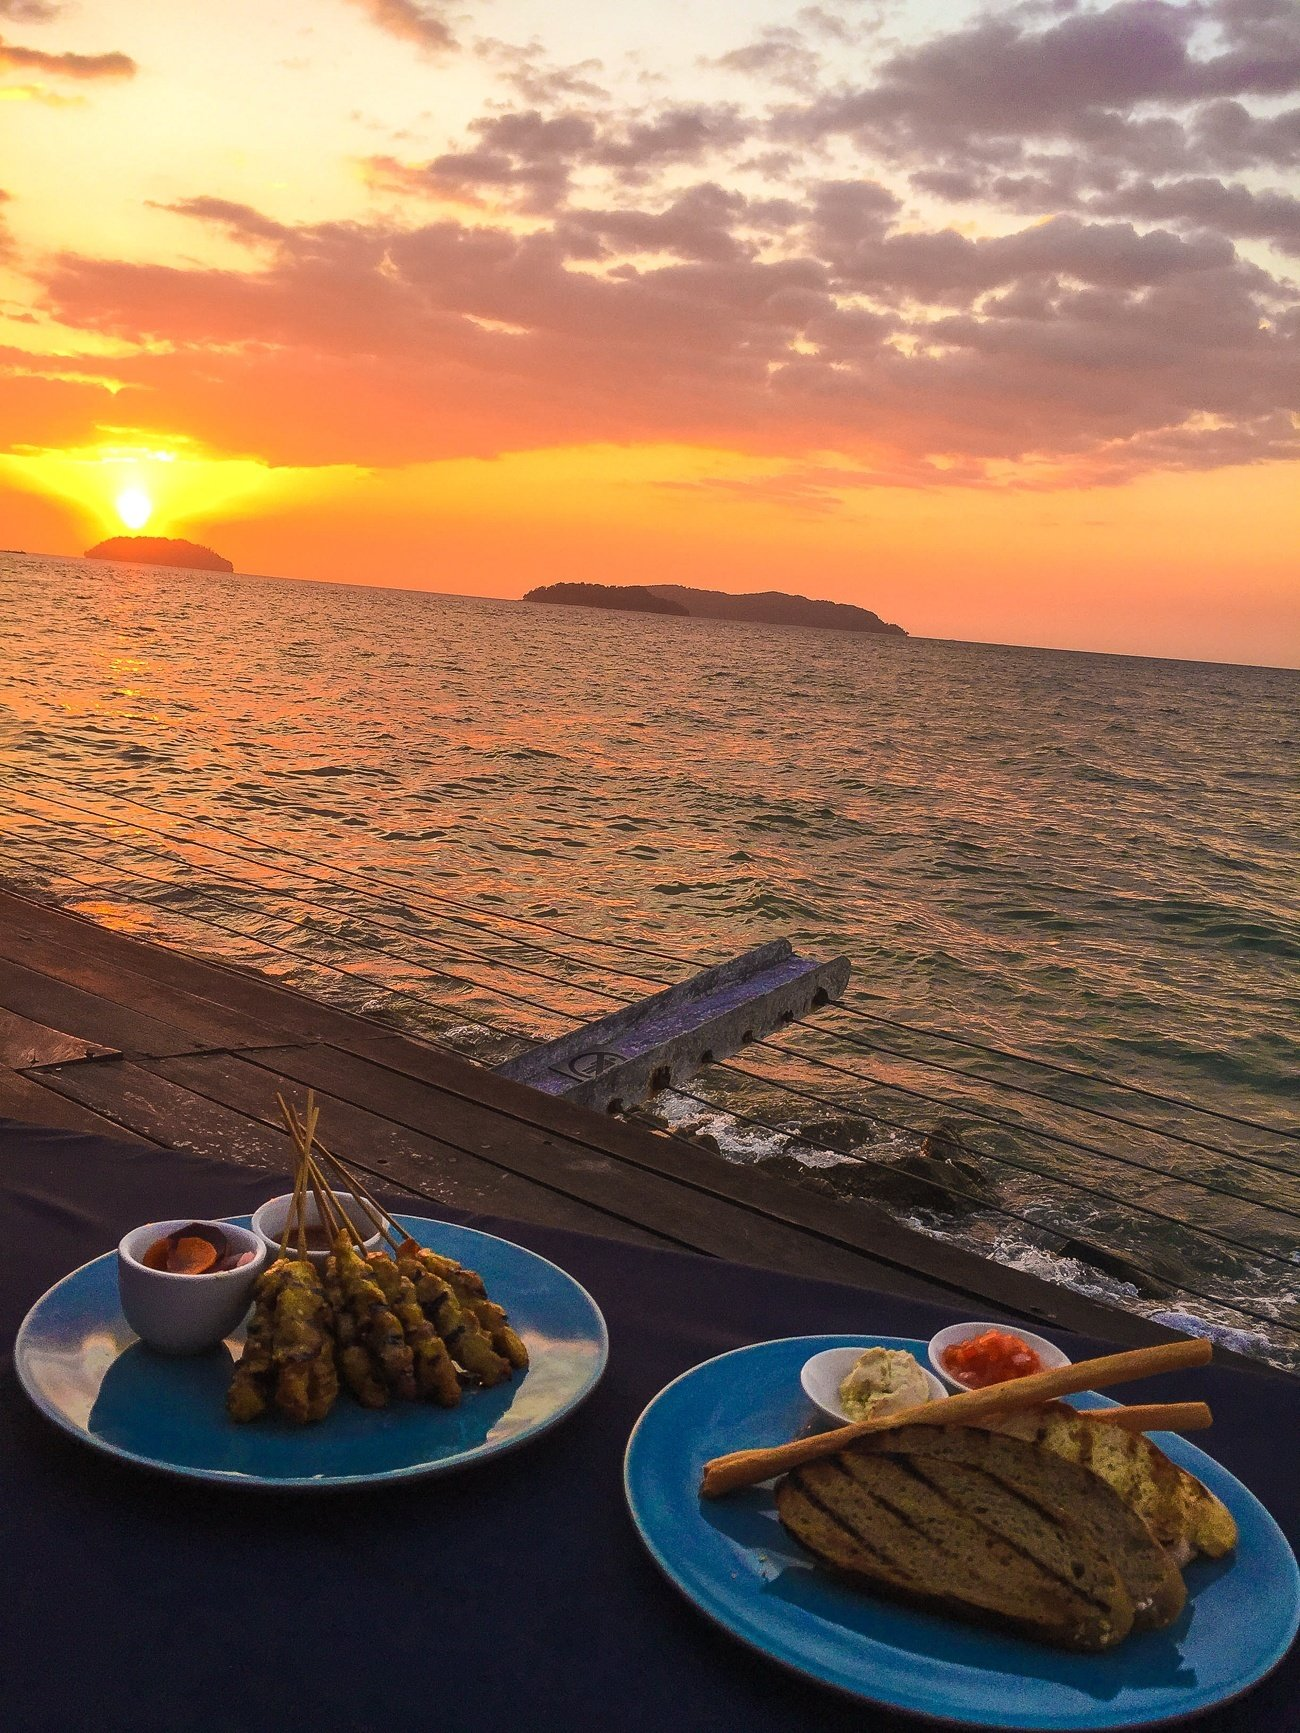 Satay and dips at the Sunset Bar, a little private island that is for guests of Shangri-la's Tanjung Aru Resort and Spa only during sunset.